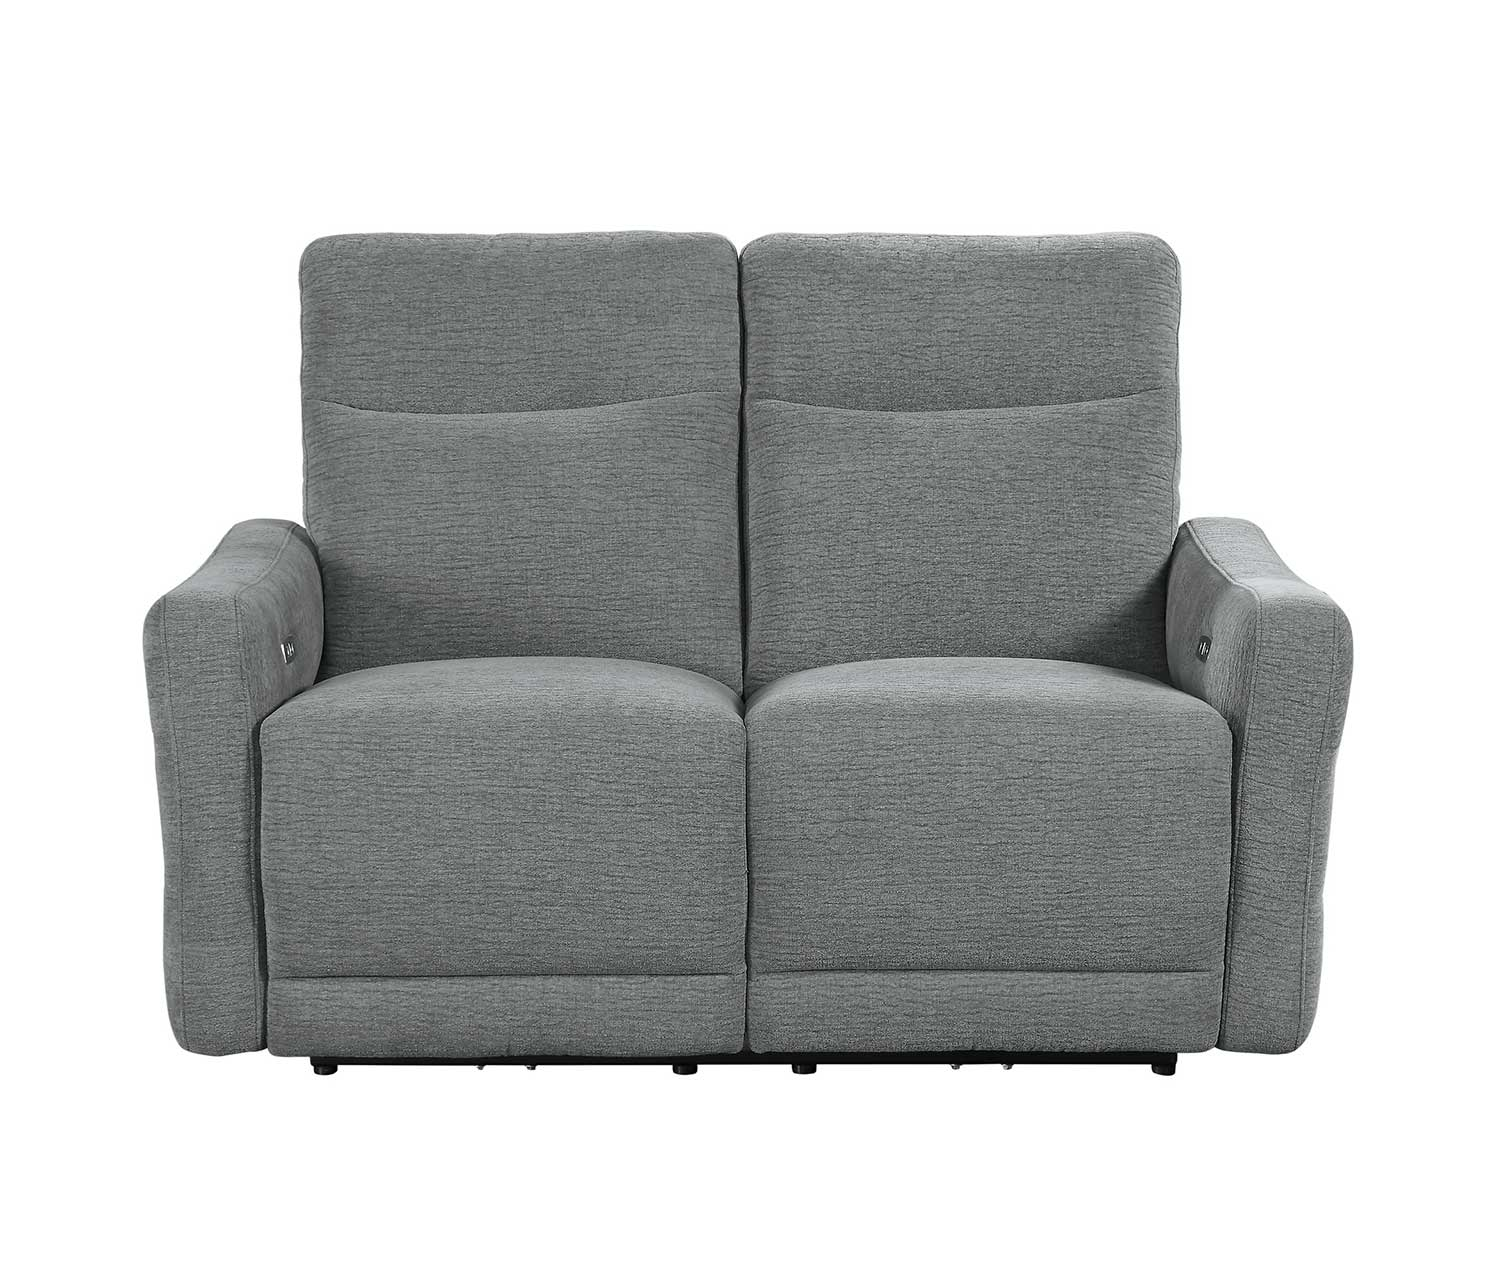 Homelegance Edition Power Double Lay Flat Reclining Love Seat with Power Headrests - Dove